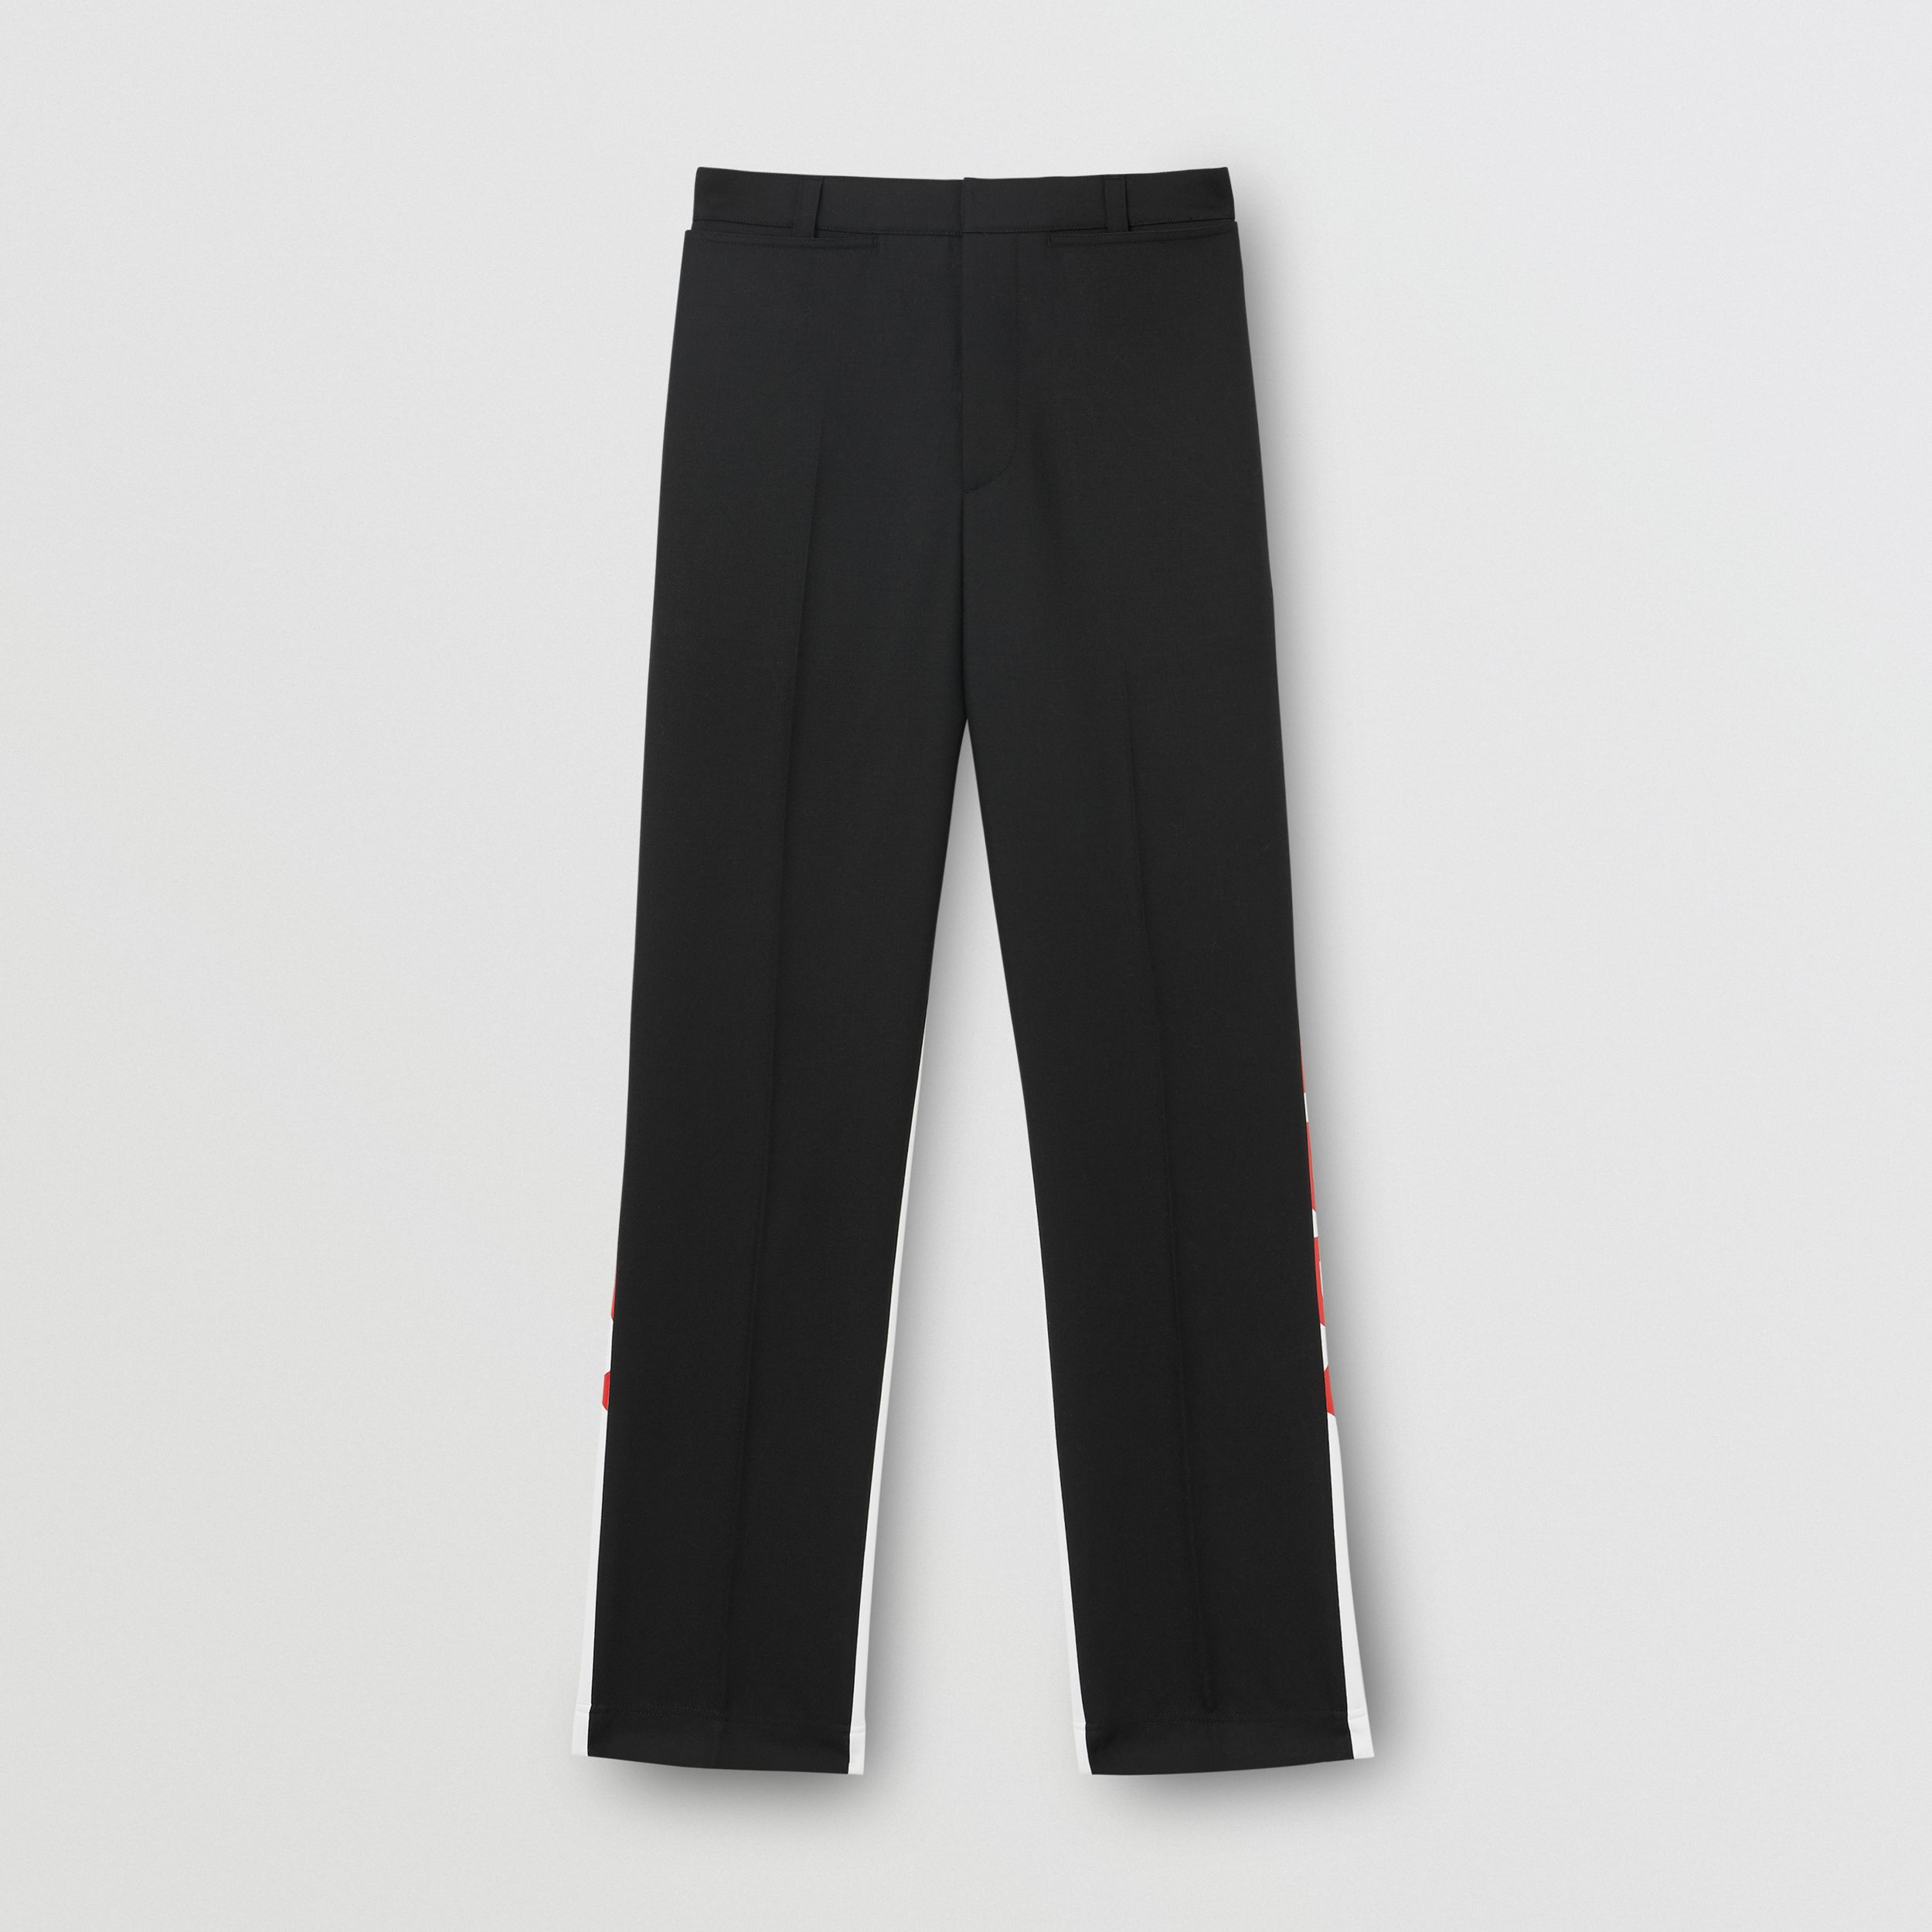 Logo Print Two-tone Wool Mohair Trousers in Black - Men | Burberry - 4